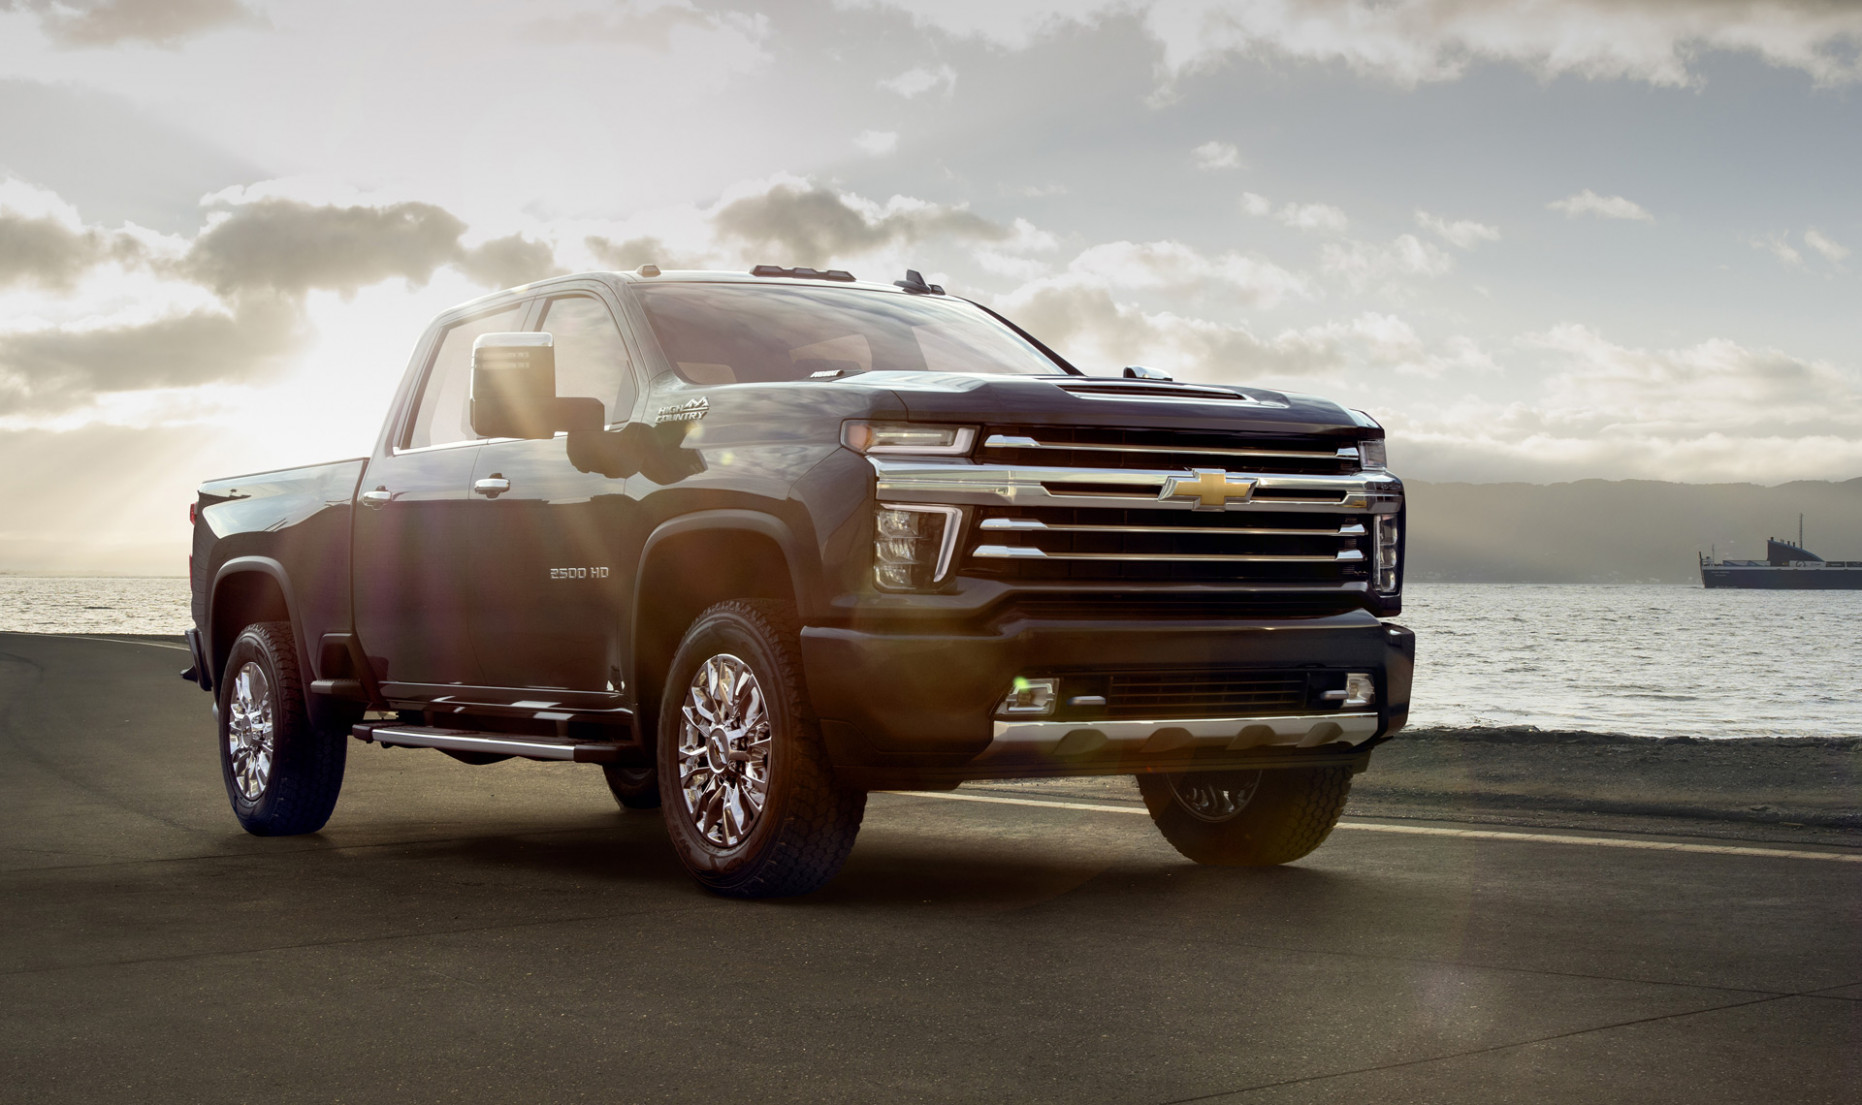 12 Chevrolet Silverado HD High Country revealed: Luxury pickup ...